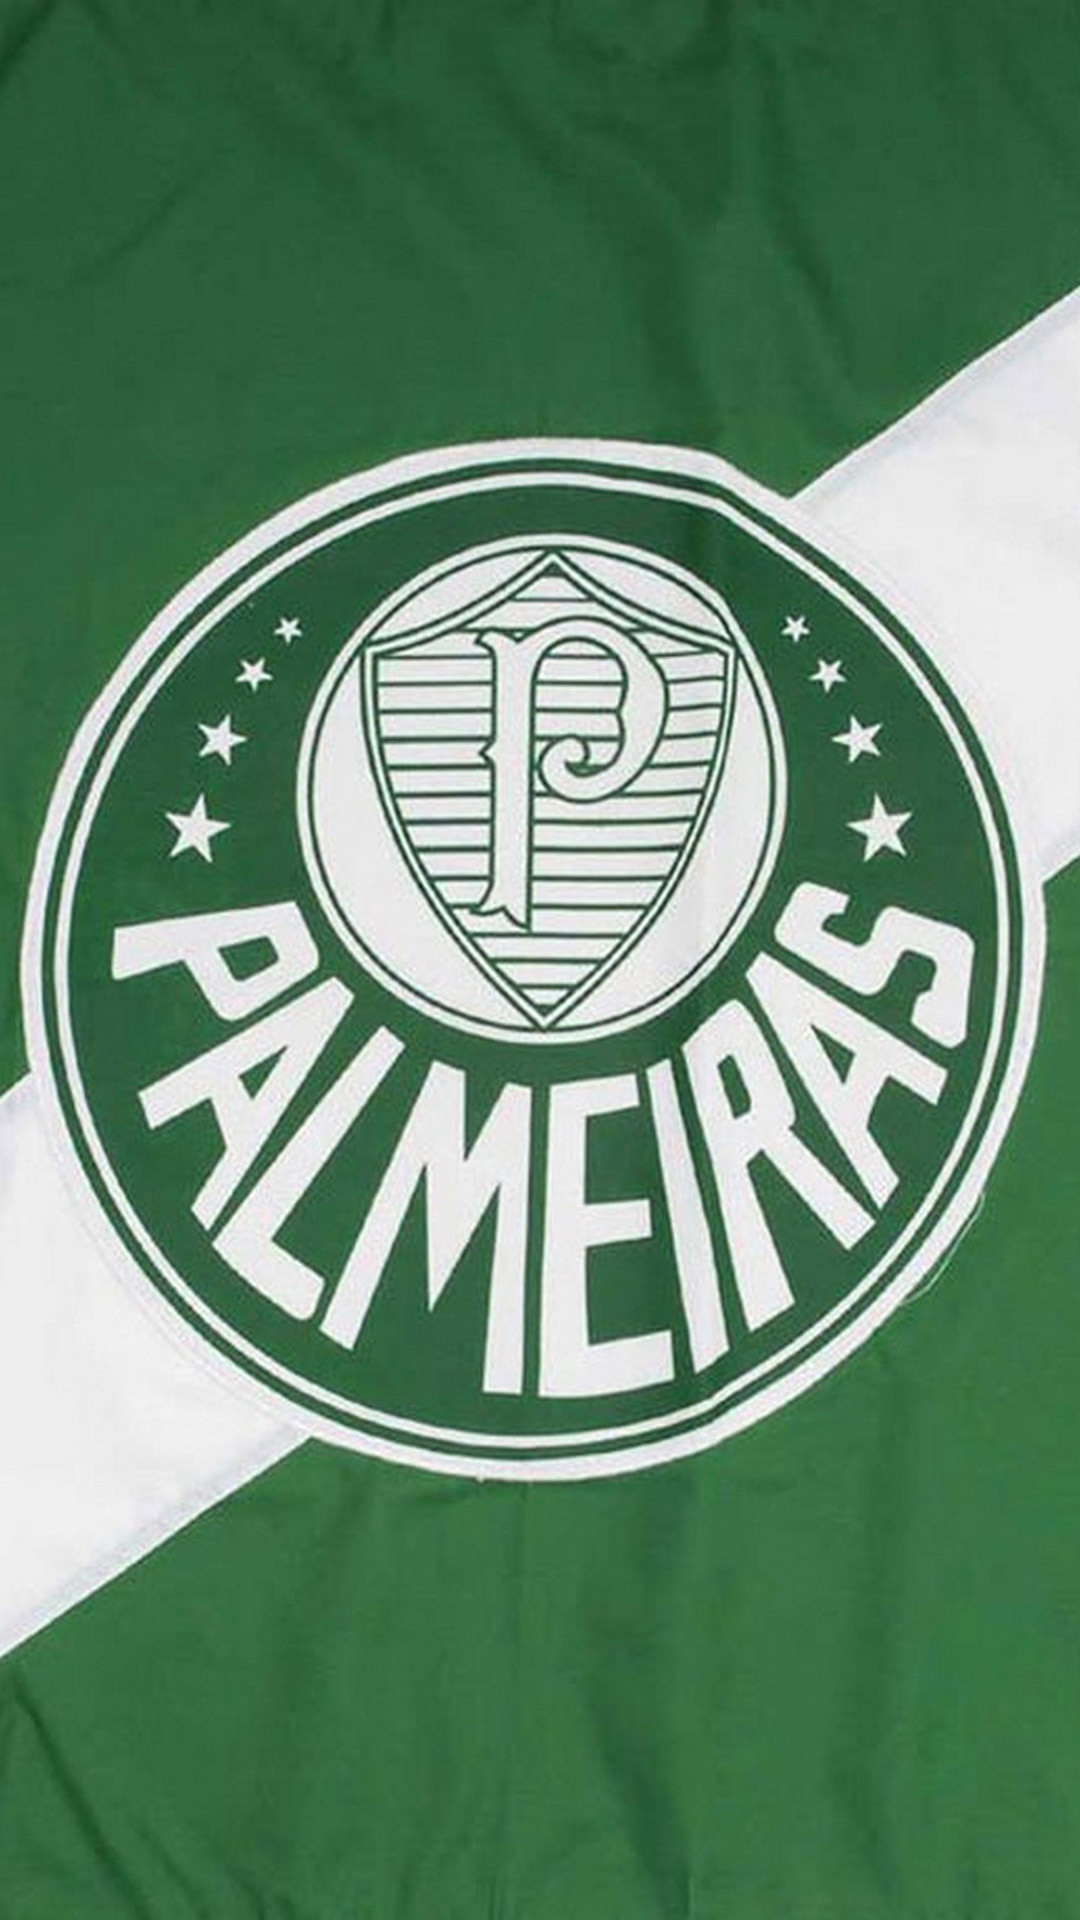 Htc One M8 Wallpaper Hd Palmeiras Wallpapers 64 Images